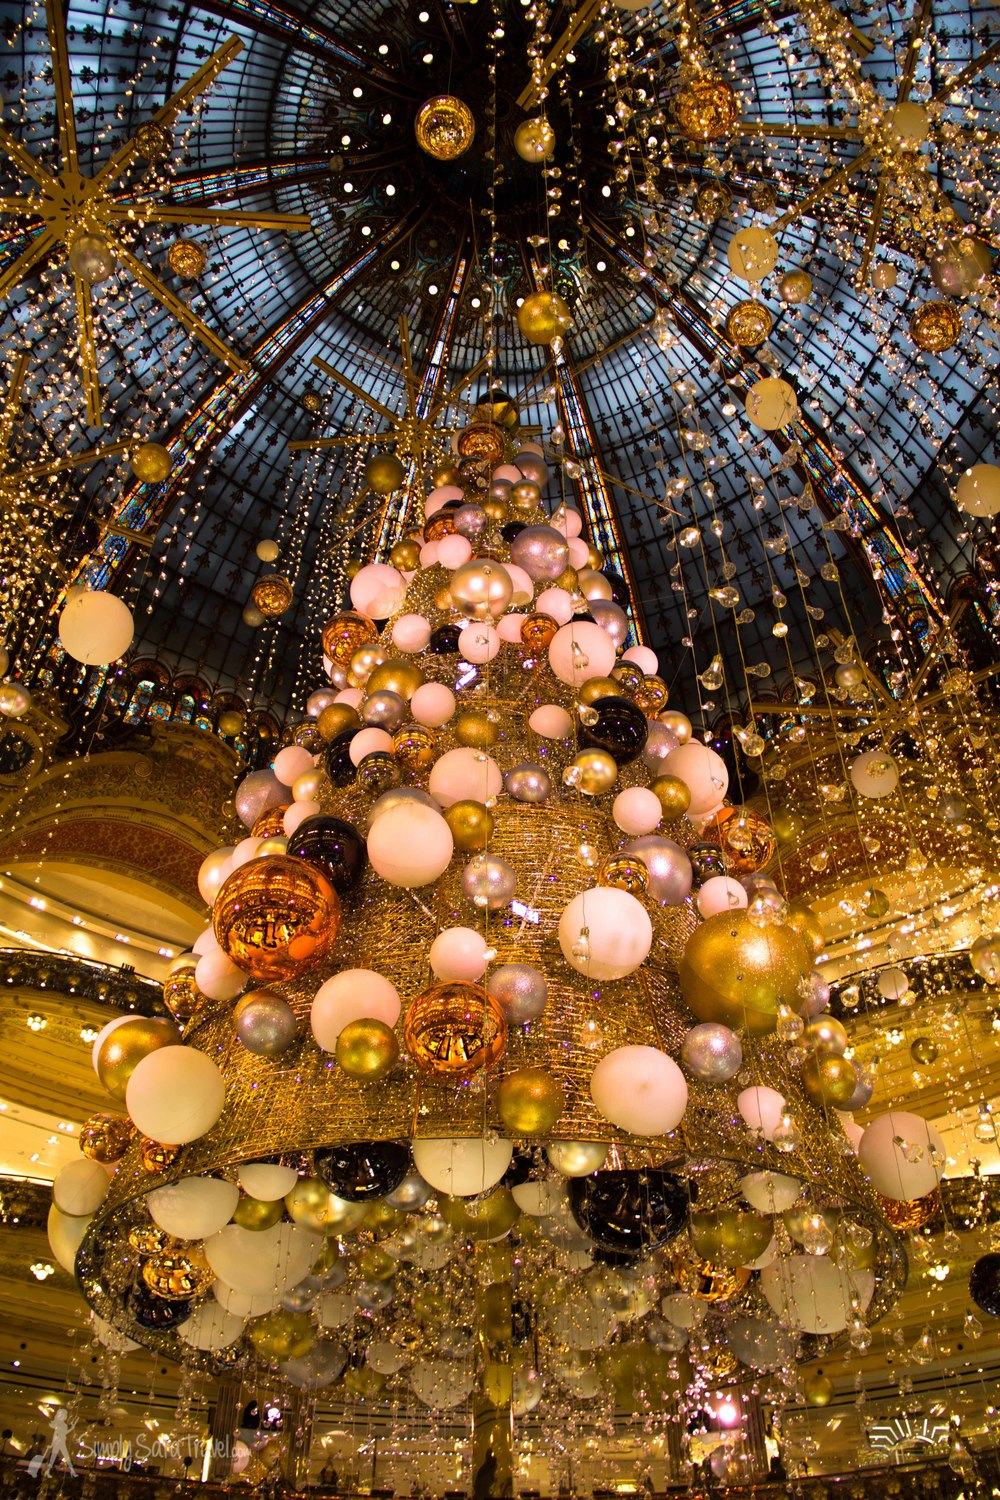 I even got to swing by Galaries Lafayette to see the tree, one of my favorite pre-Christmas in Paris traditions.